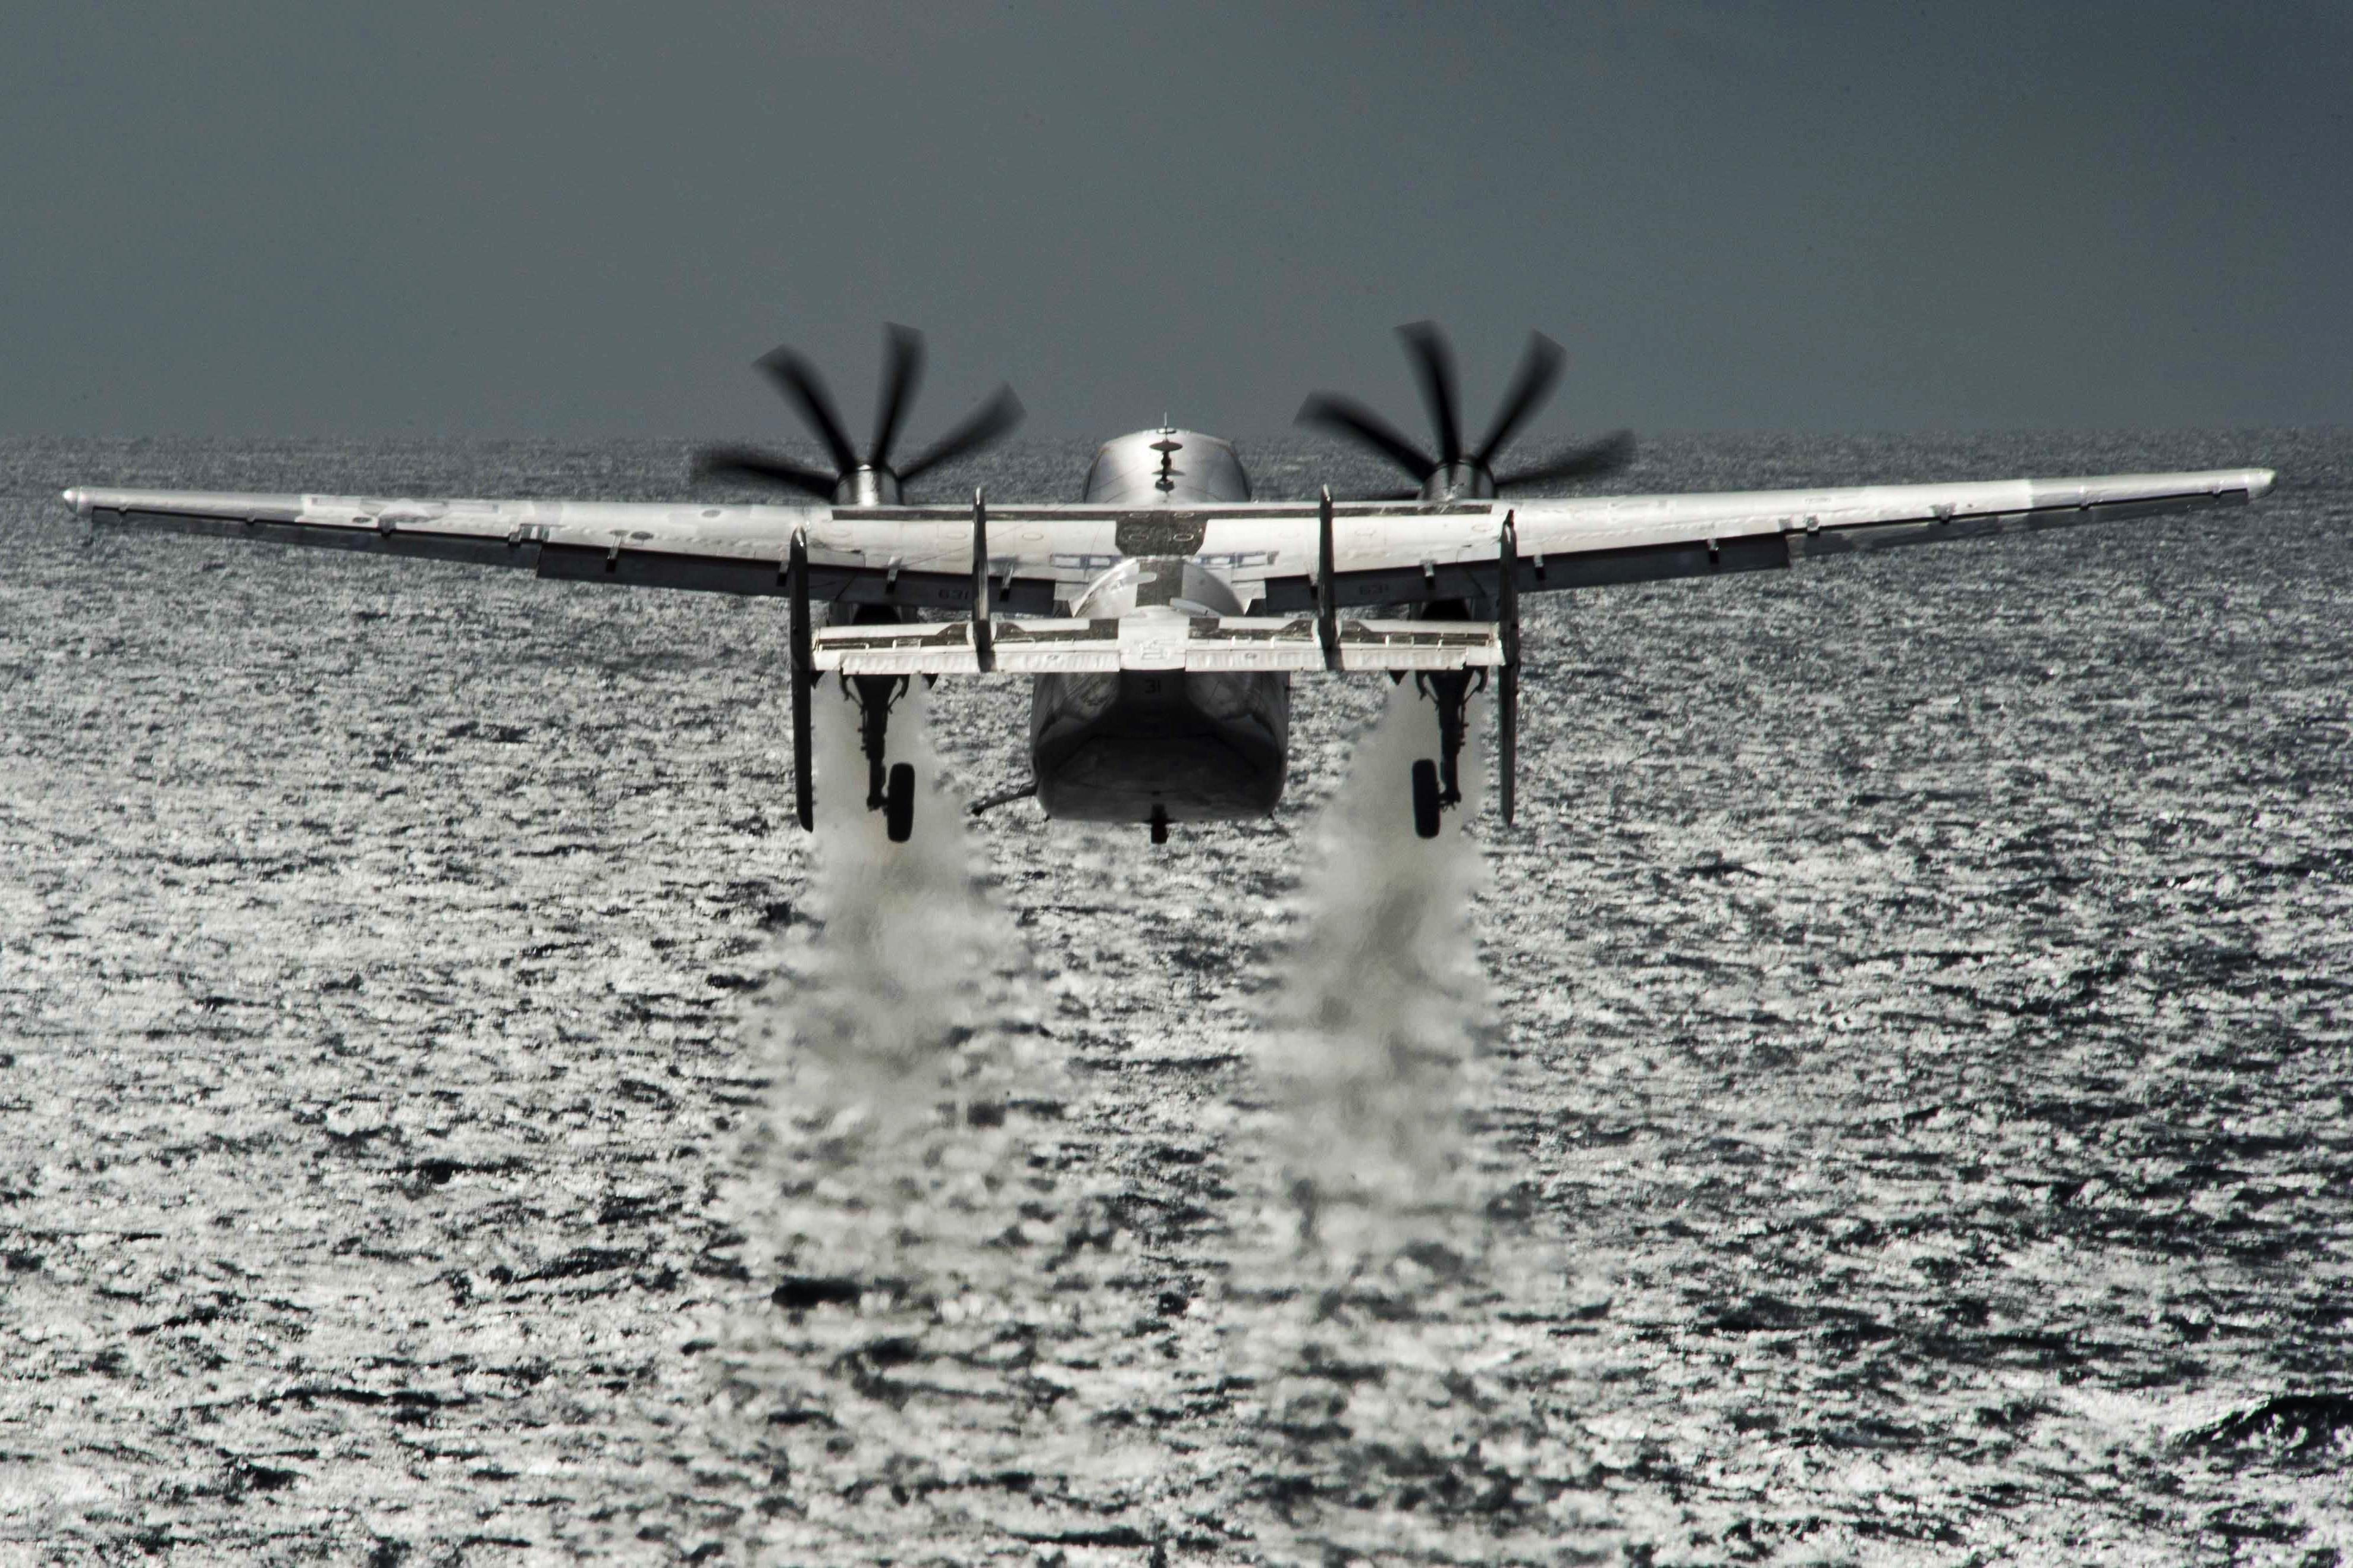 Three people remain missing after Navy COD plane crashes in Pacific